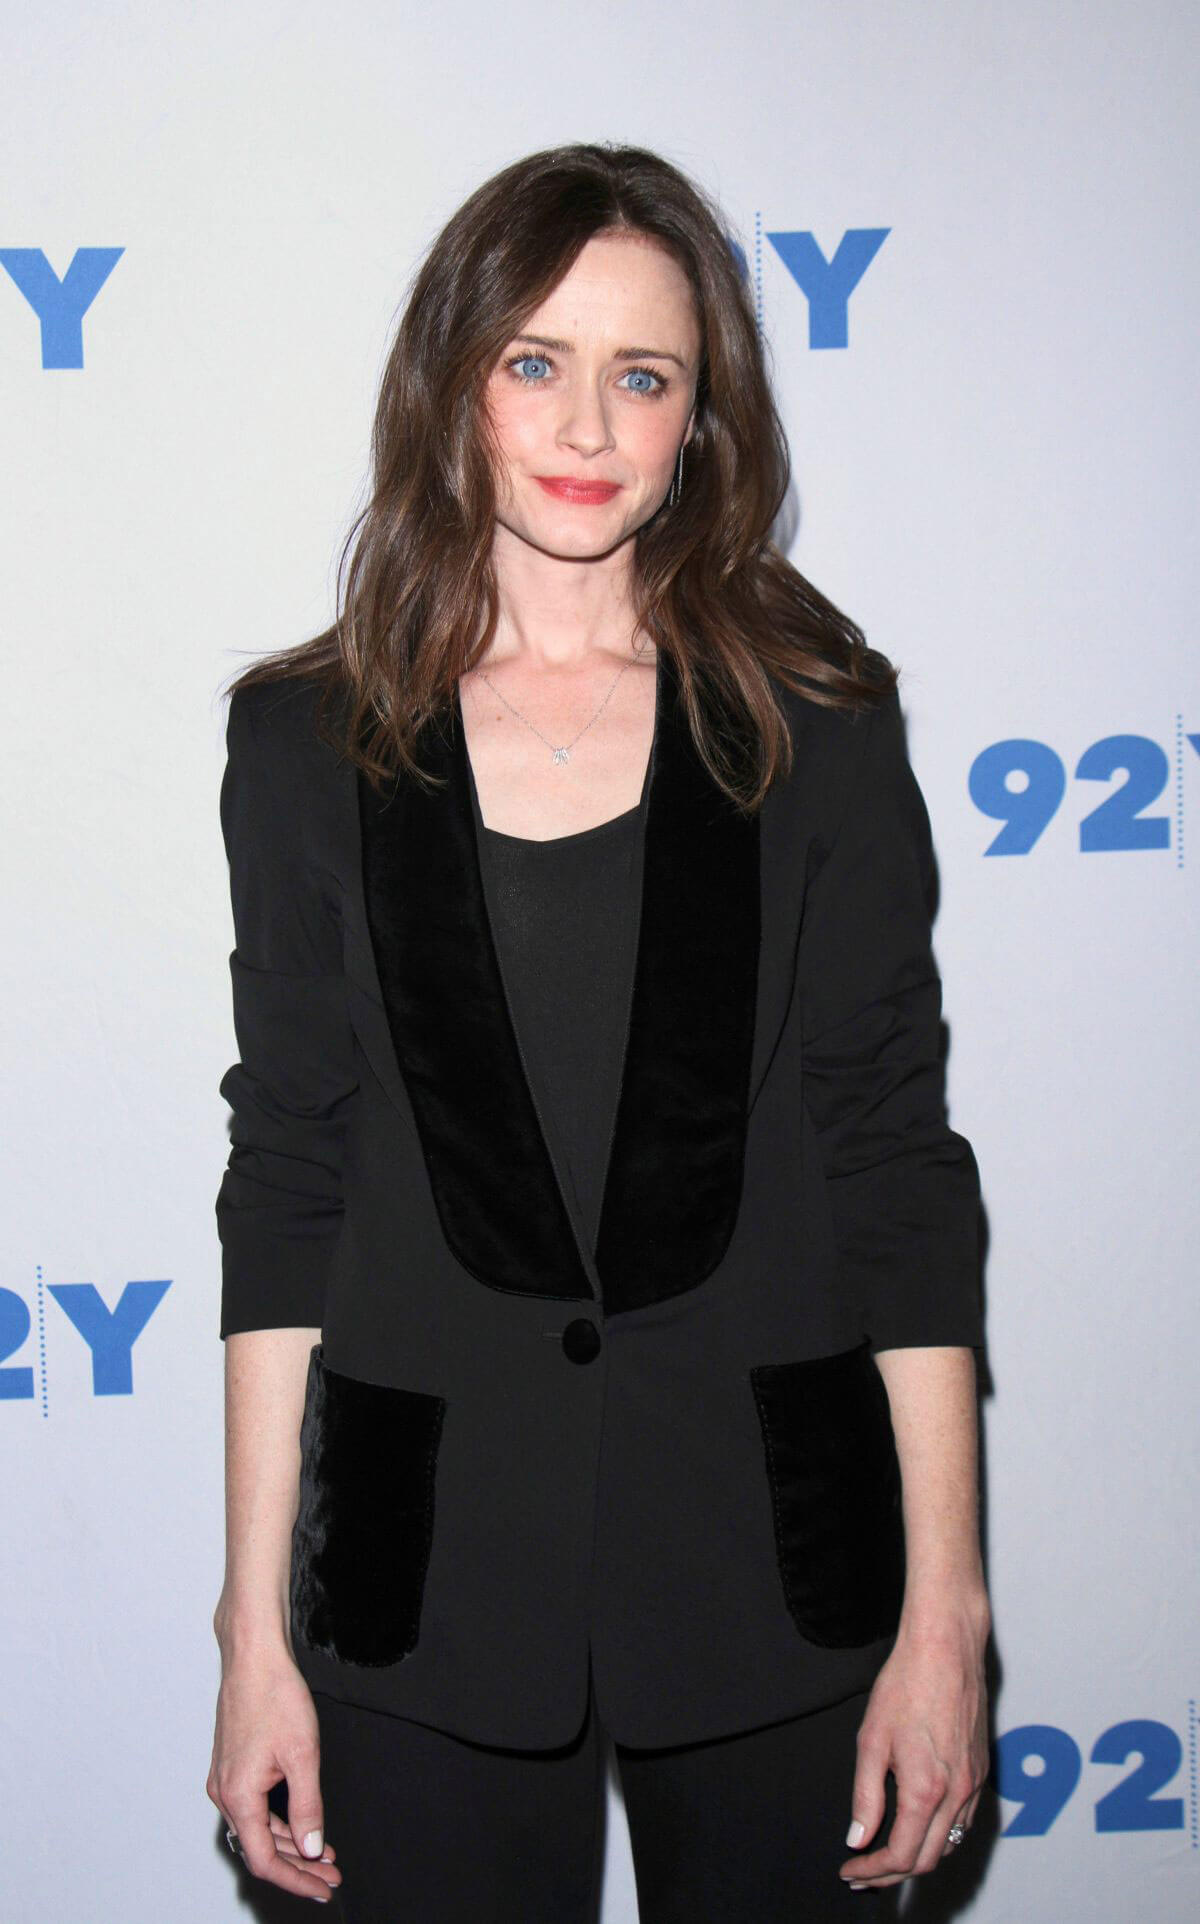 Alexis Bledel at The Handmaid's Tale TV Show Screening in New York